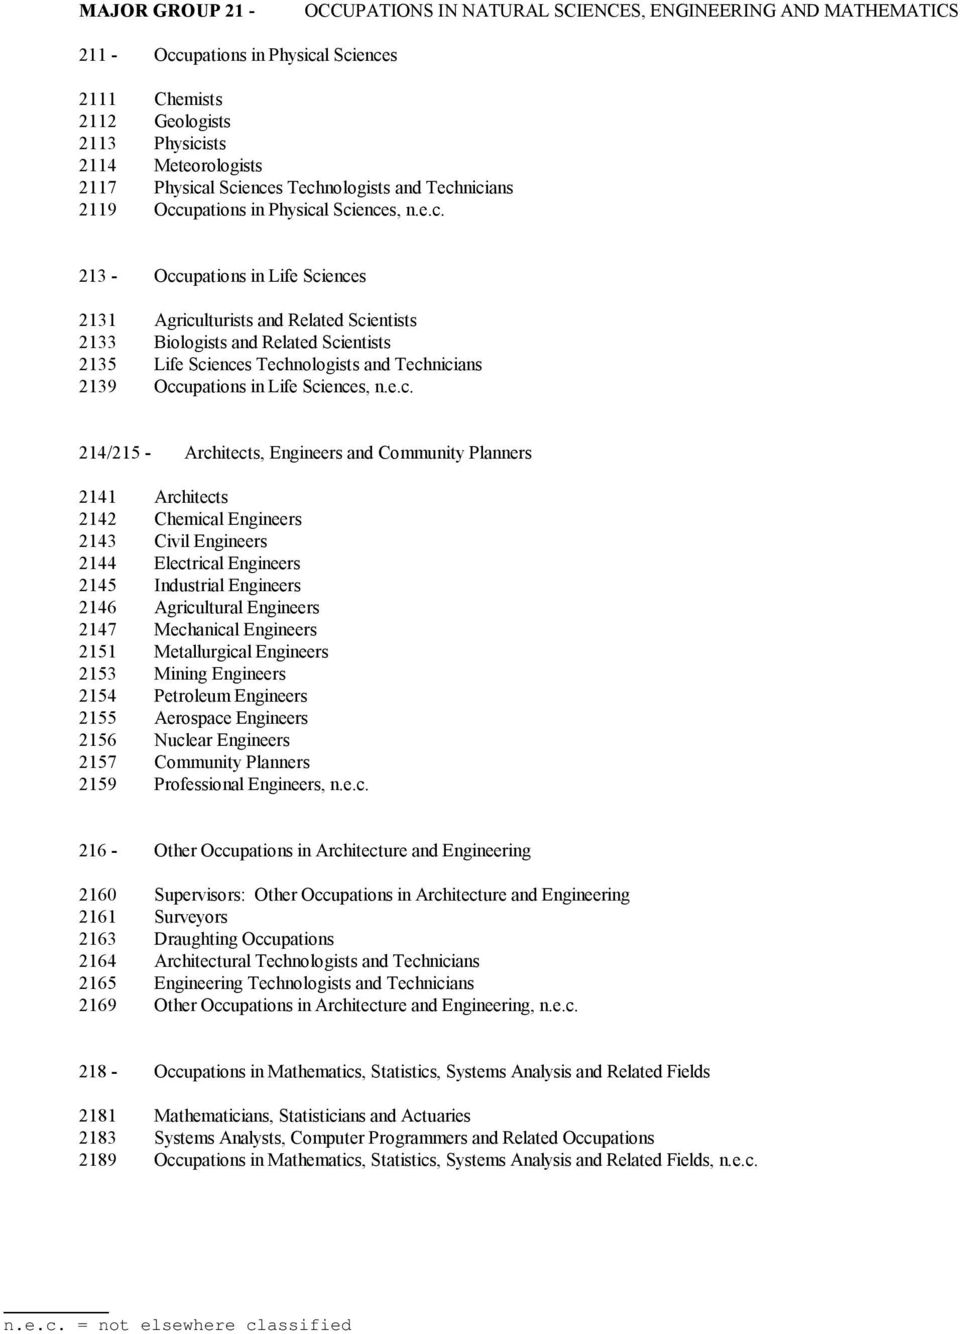 Scientists 2135 Life Sciences Technologists and Technicians 2139 Occupations in Life Sciences, n.e.c. 214/215 - Architects, Engineers and Community Planners 2141 Architects 2142 Chemical Engineers